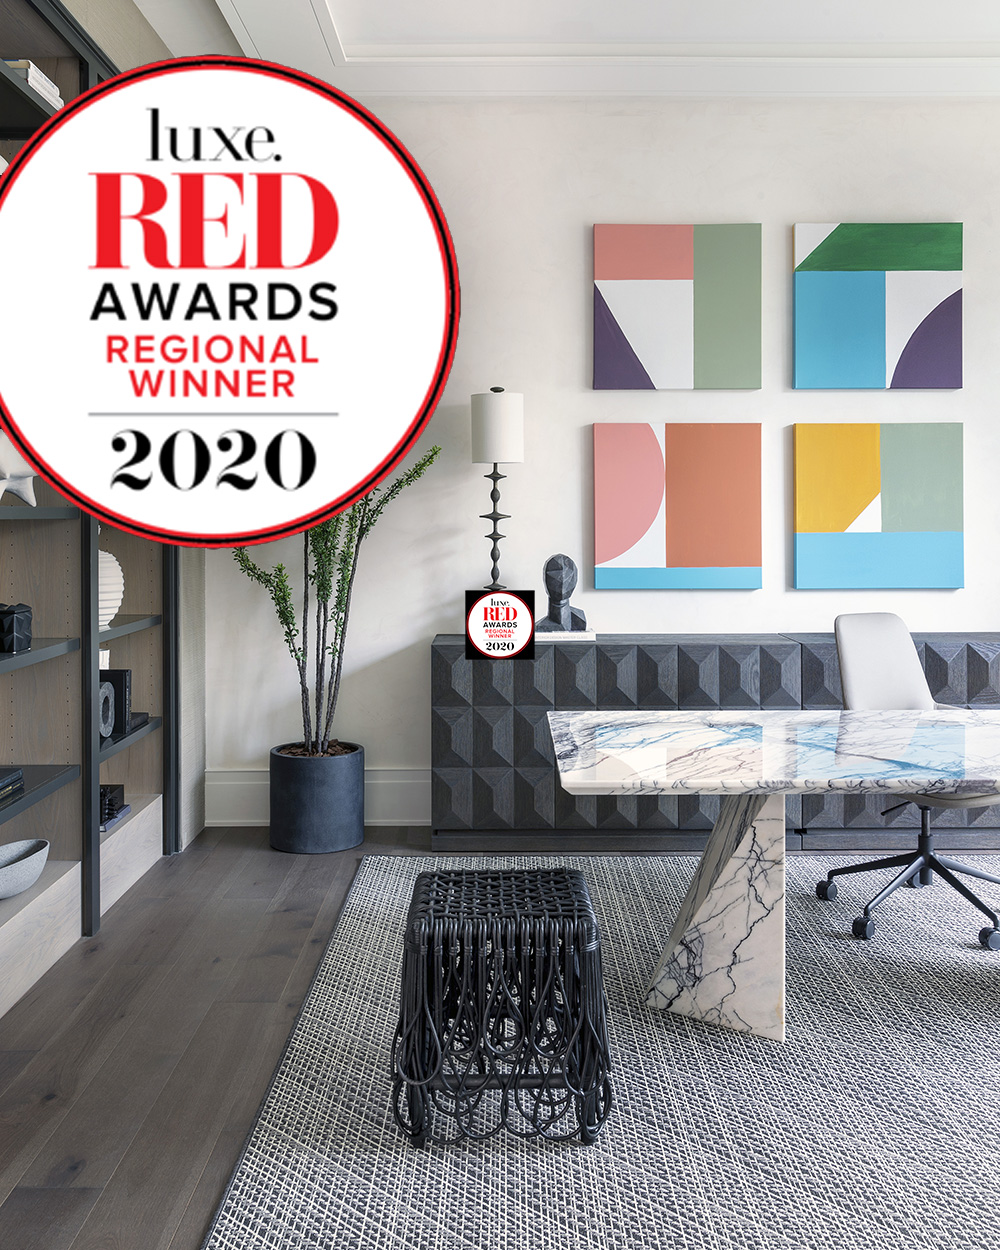 Luxe Red Award Winner